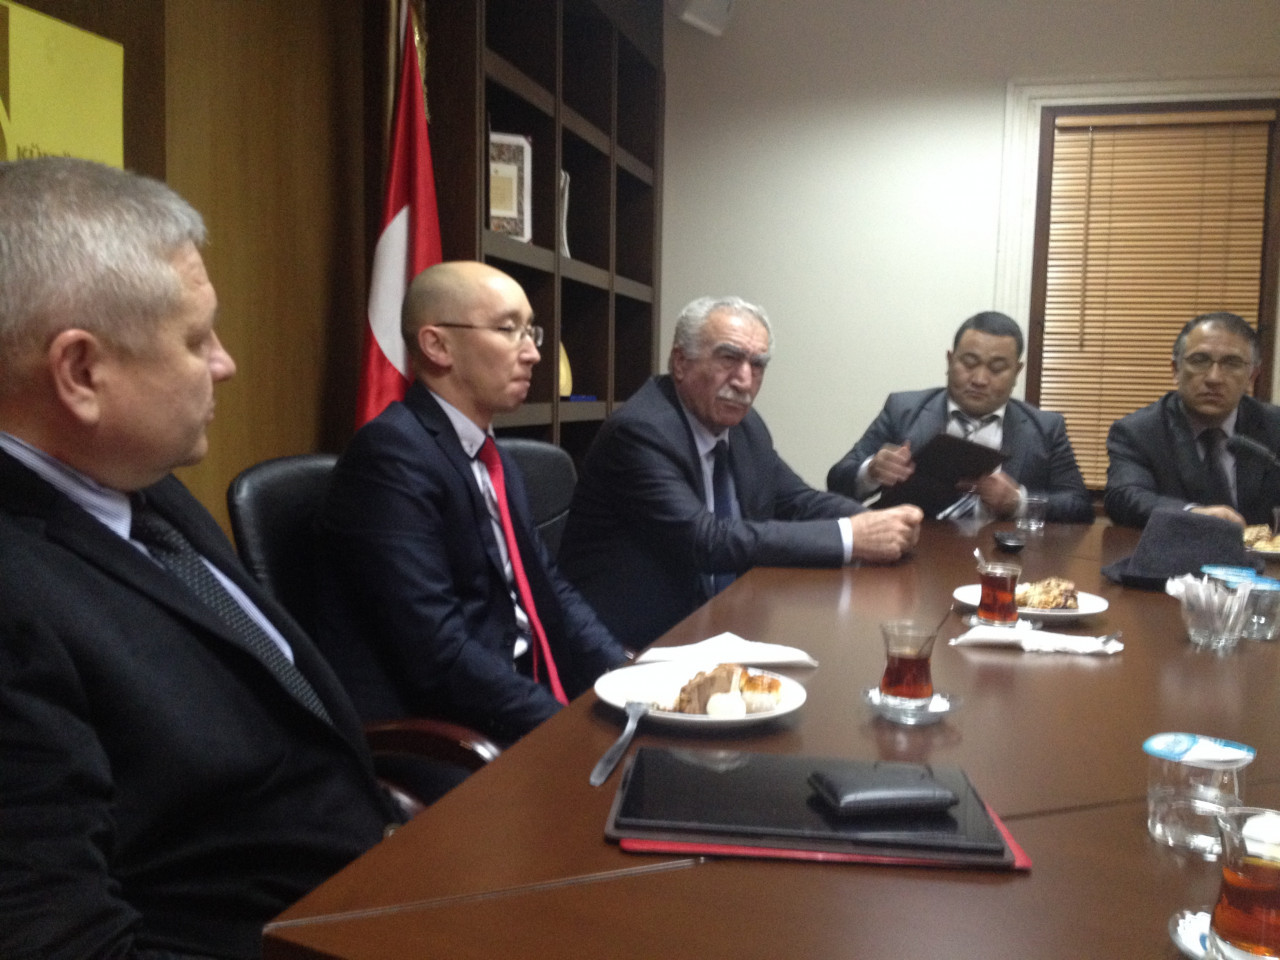 Visit from the Deputy Minister Chakiev to Culture Co. Galeri - 6. Resim